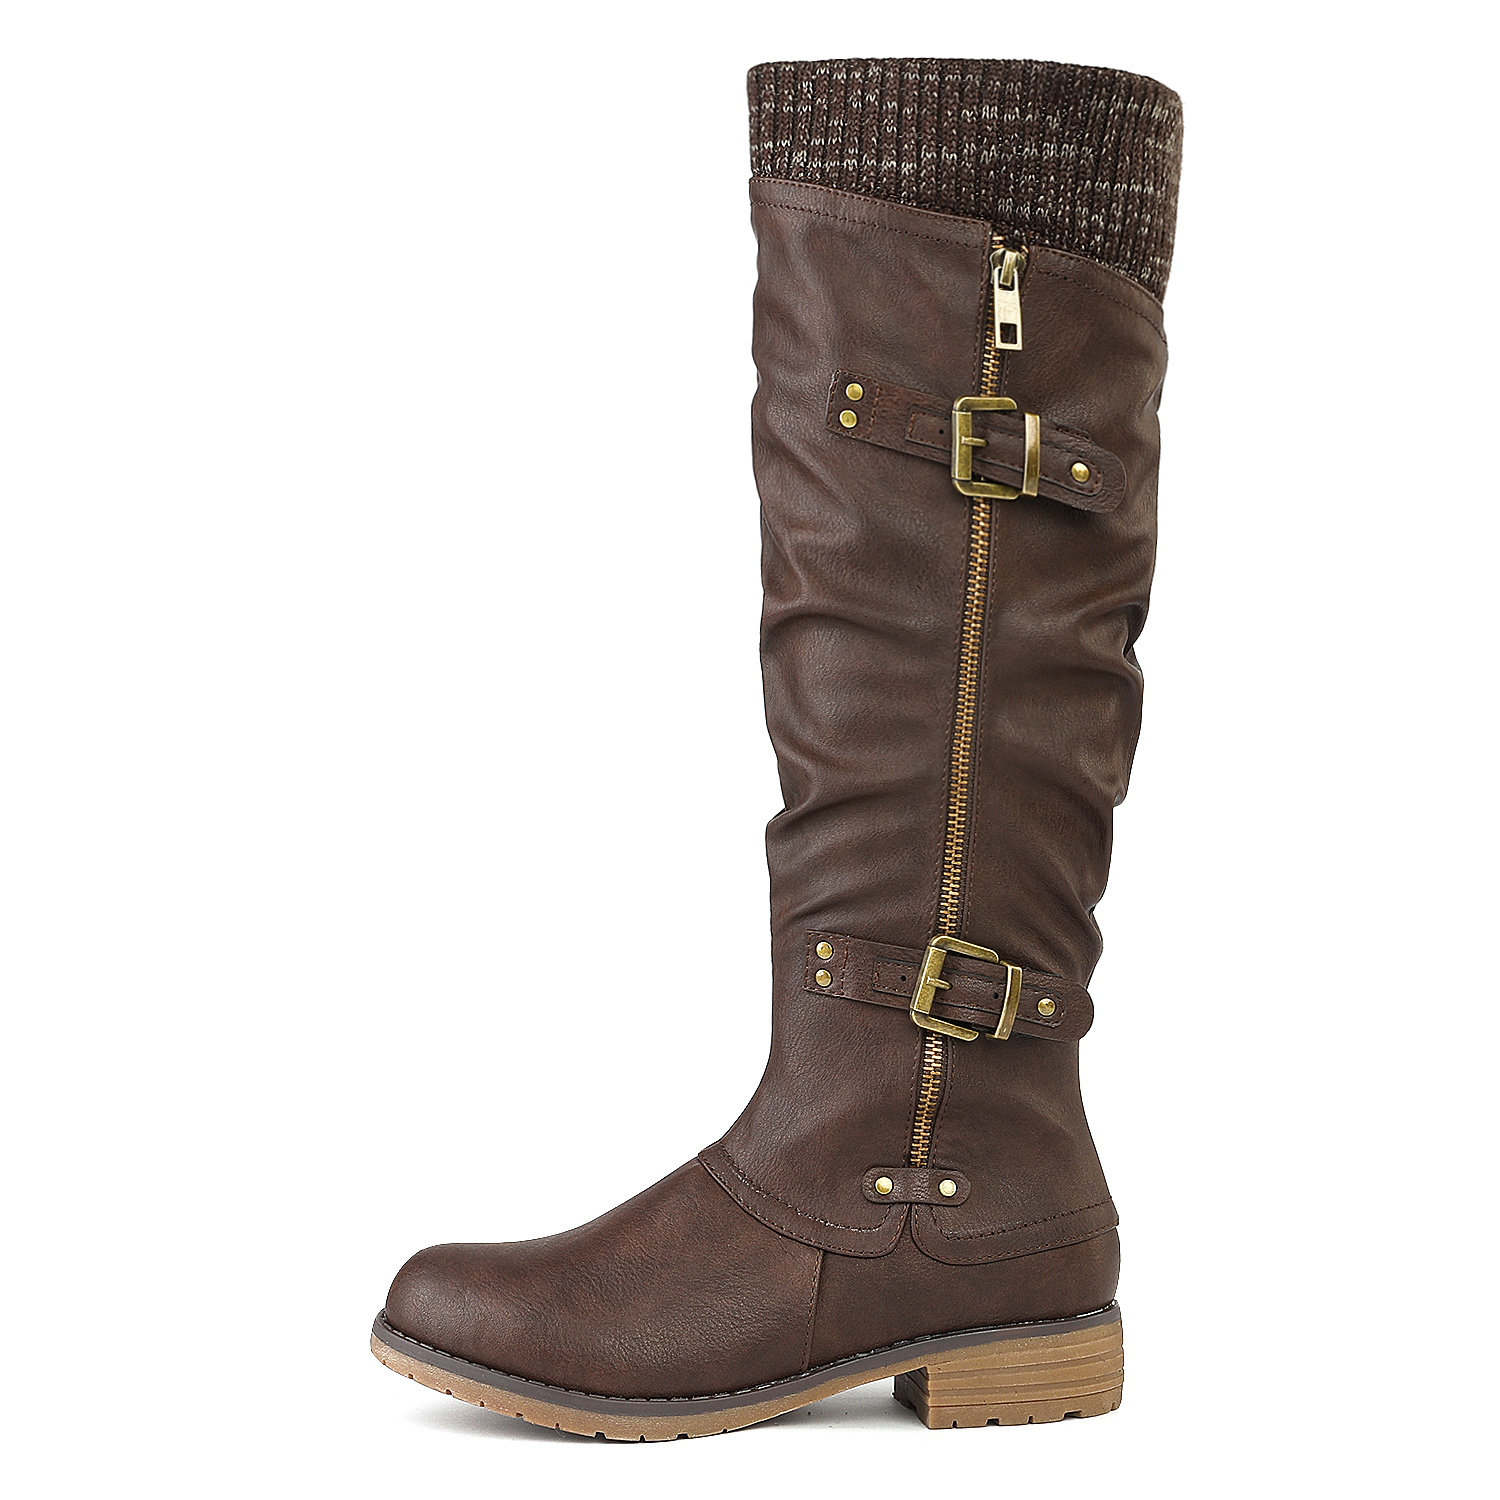 DREAM-PAIRS-Womens-DEPP-Cowgirl-Soft-PU-Leather-Combat-Knee-High-Riding-Boots thumbnail 13